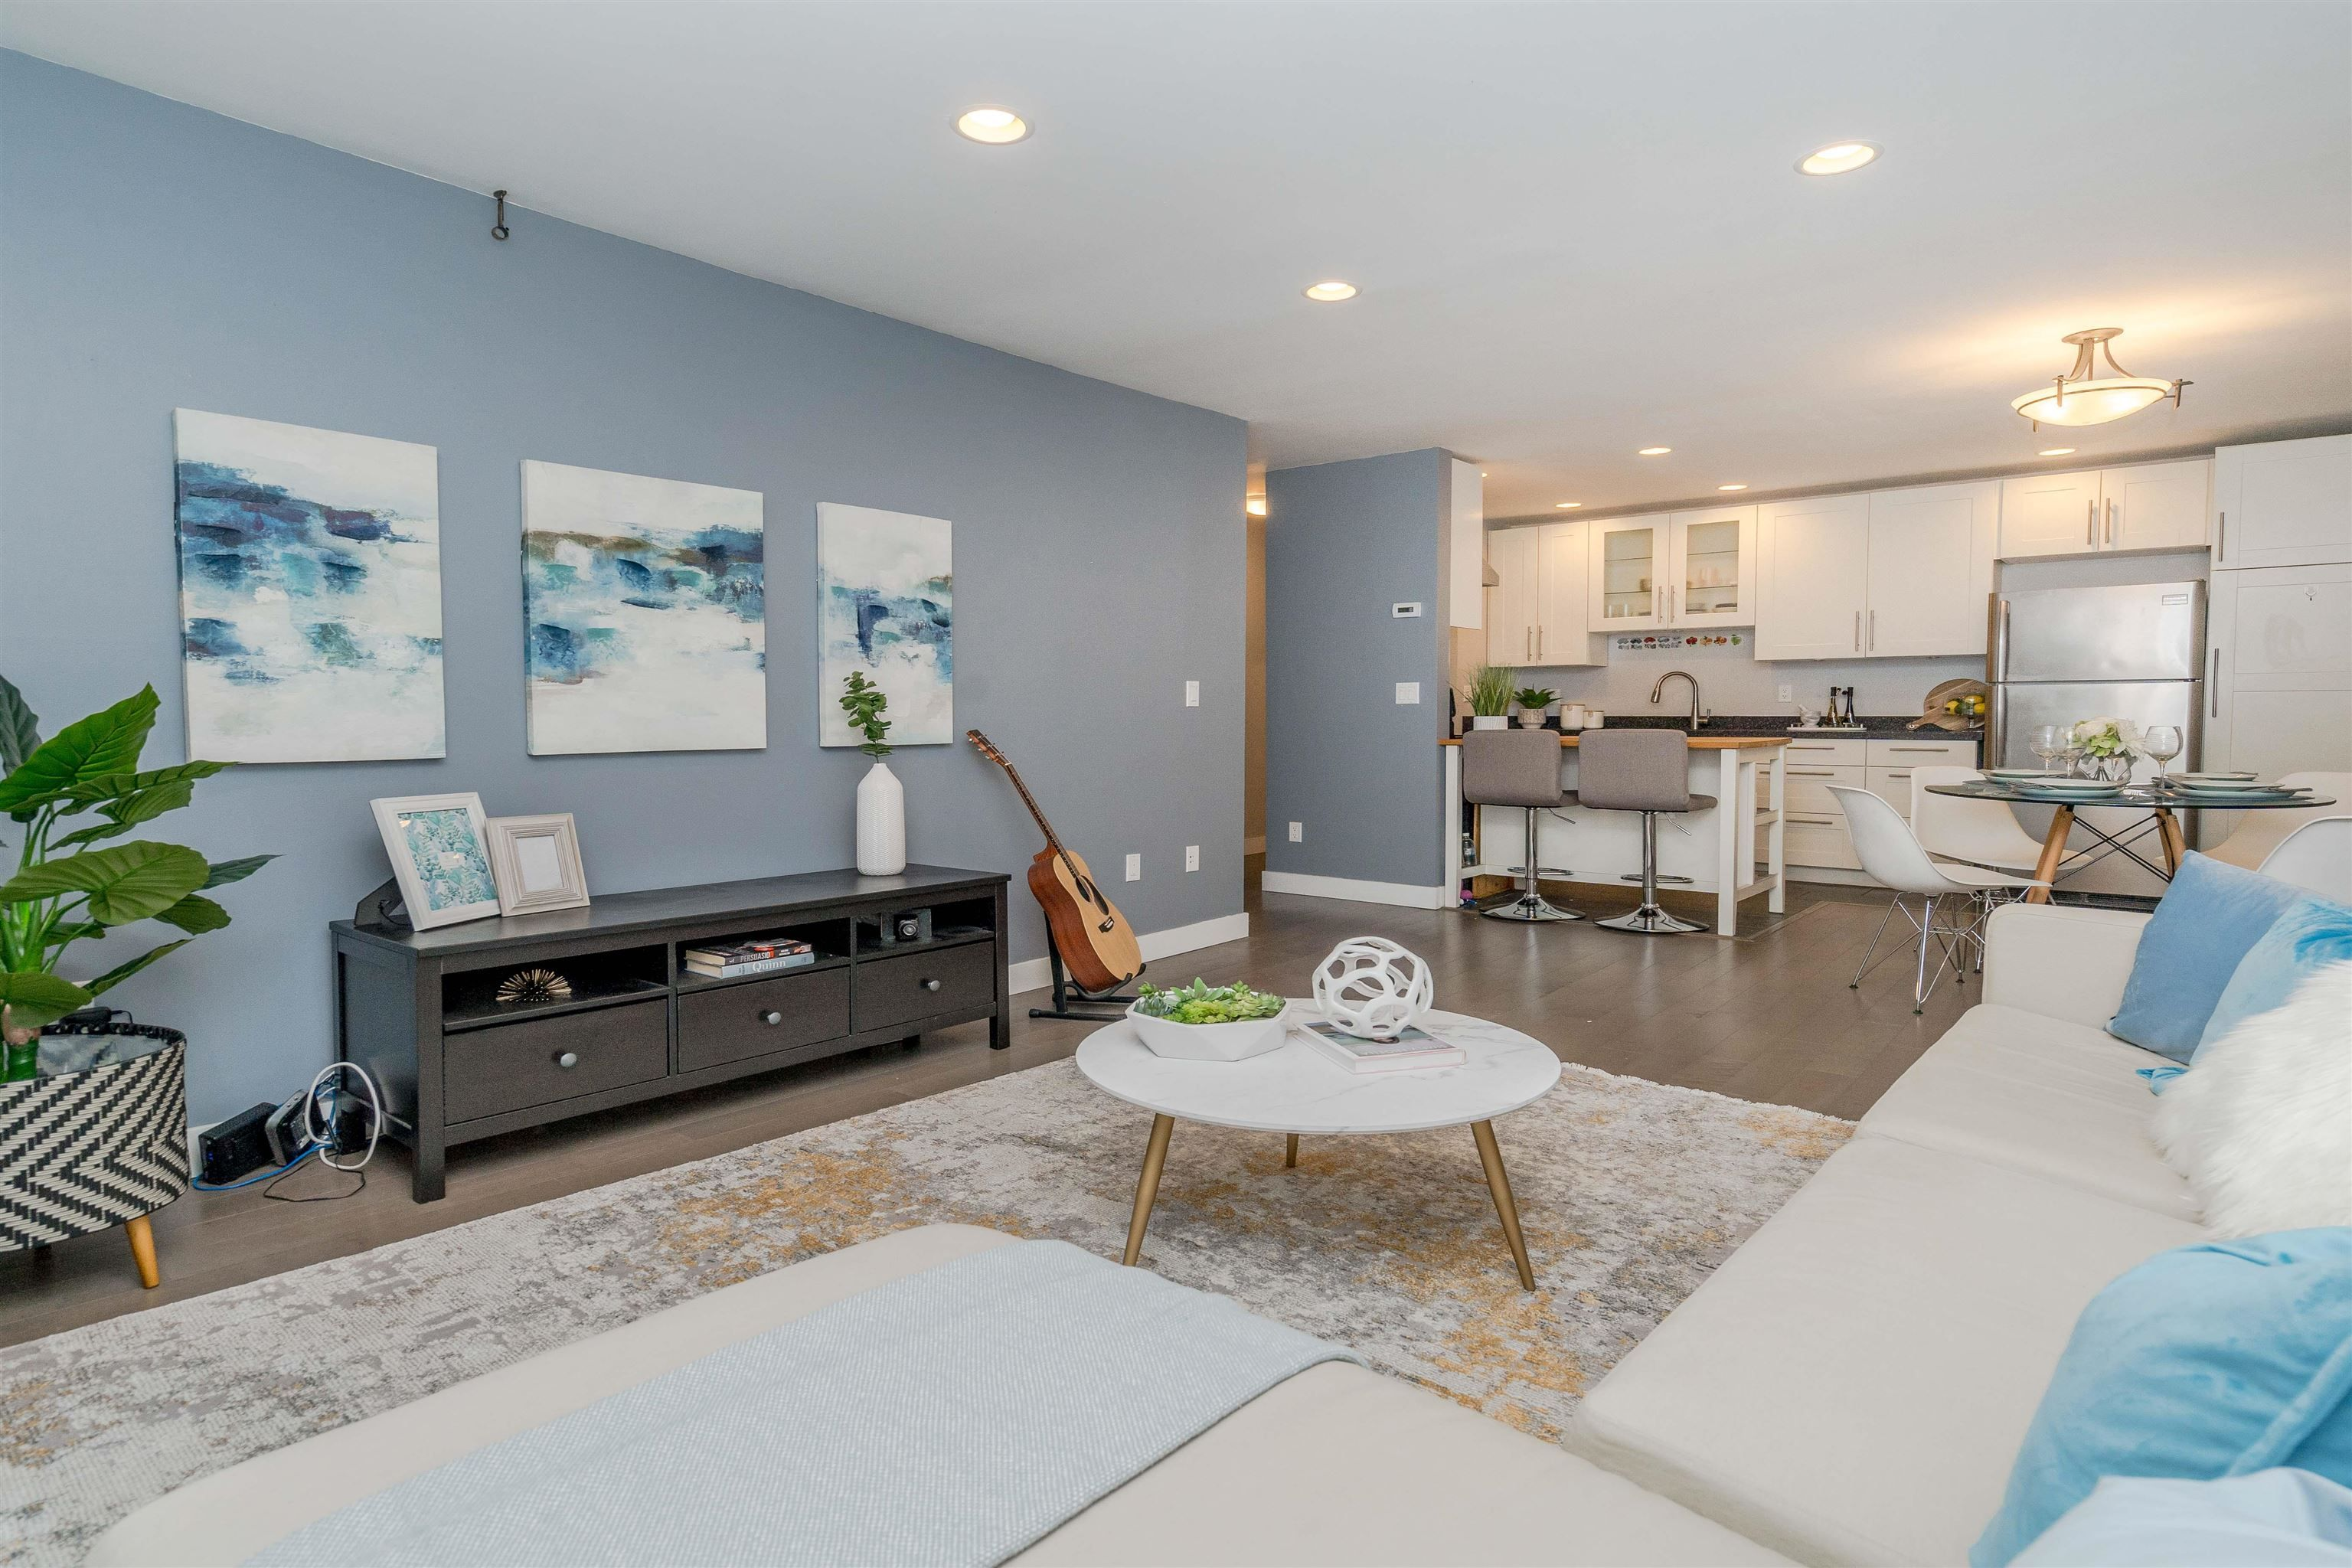 """Main Photo: 104 2935 SPRUCE Street in Vancouver: Fairview VW Condo for sale in """"Landmark Caesar"""" (Vancouver West)  : MLS®# R2609683"""